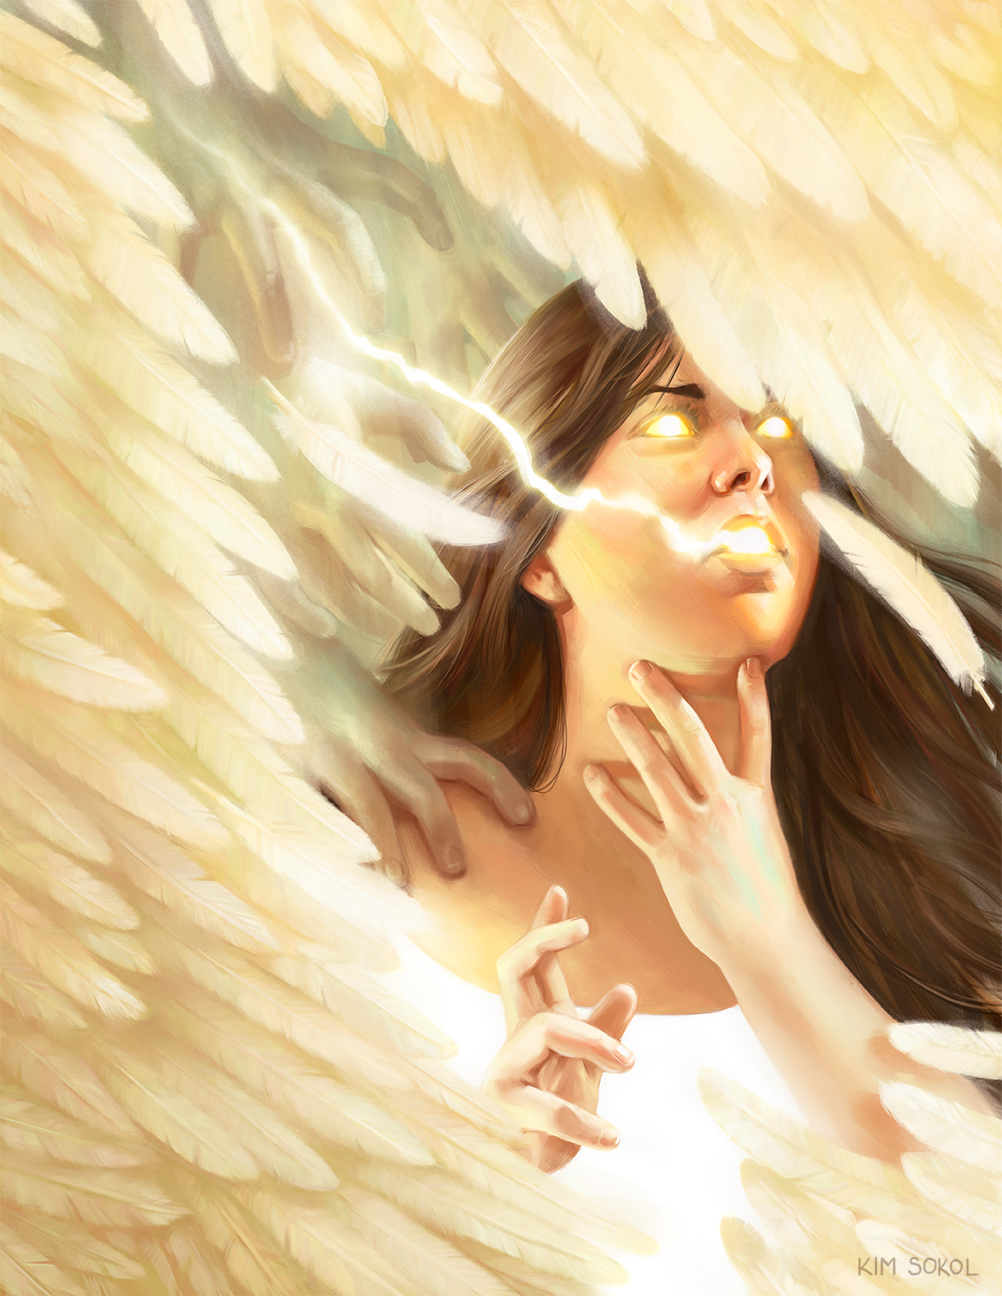 The Girl Sees Angels